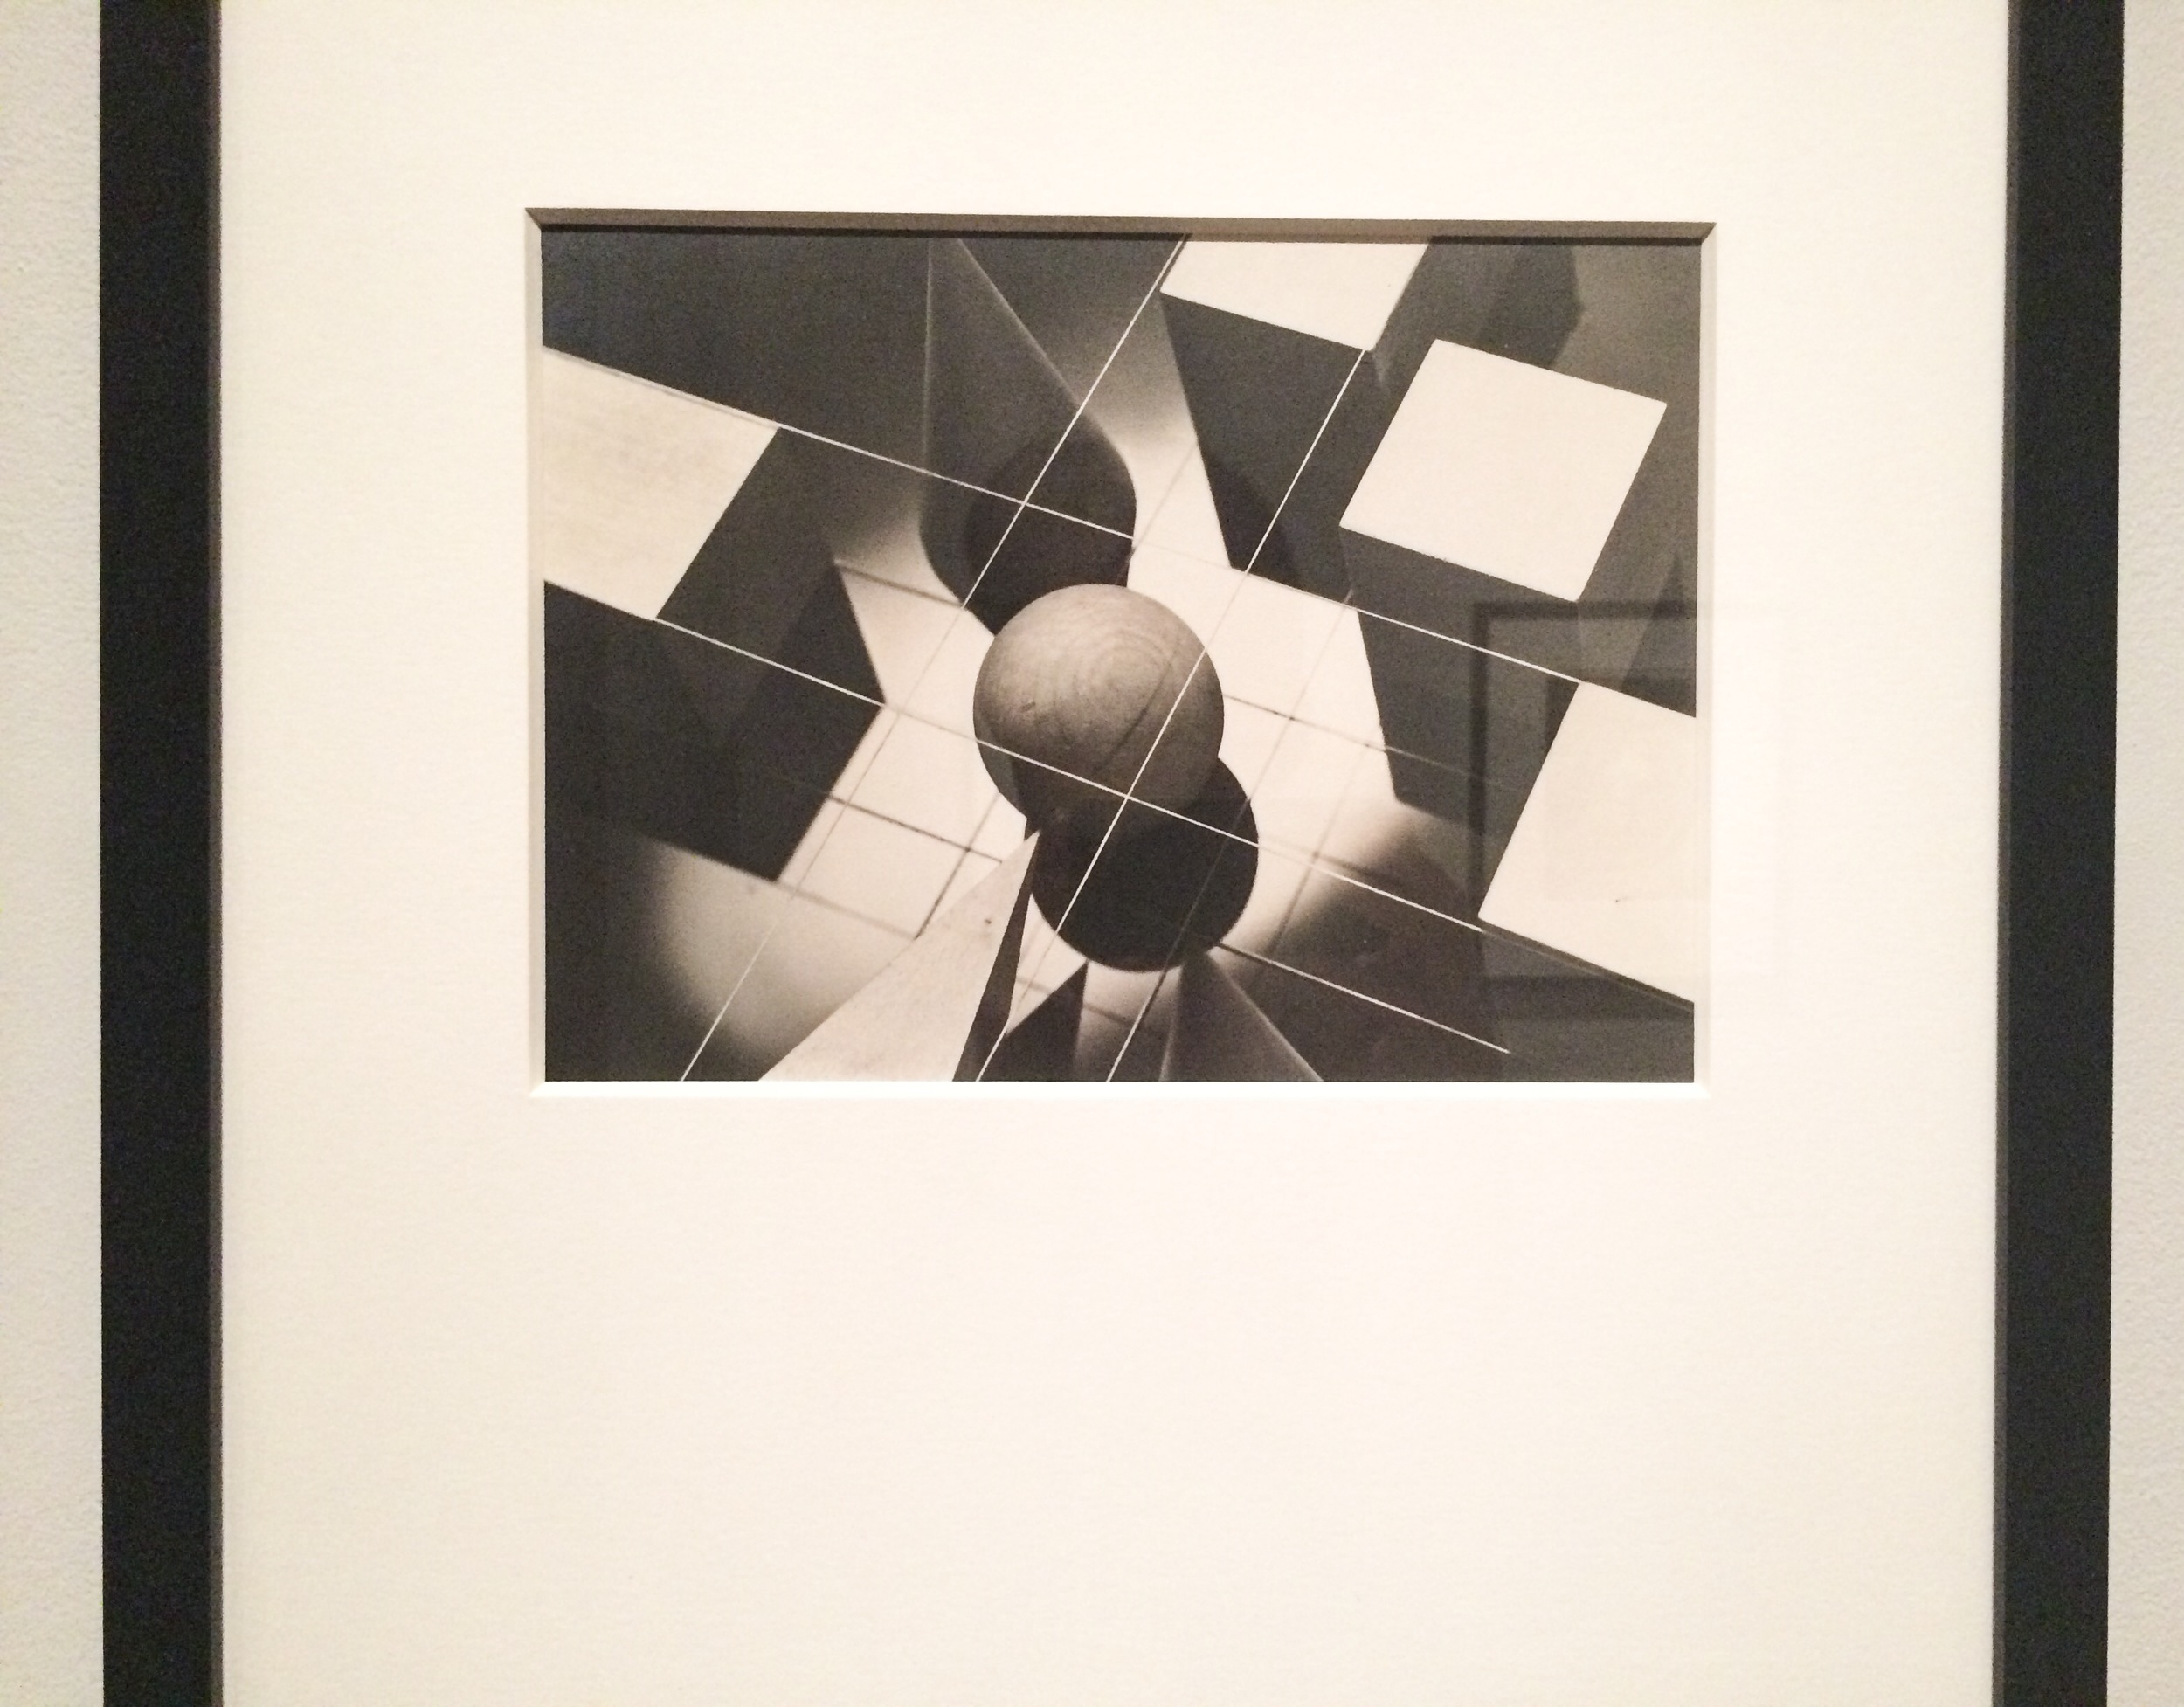 The geometry in this photograph by Arthur Gerlach appeals to me on a deep level.